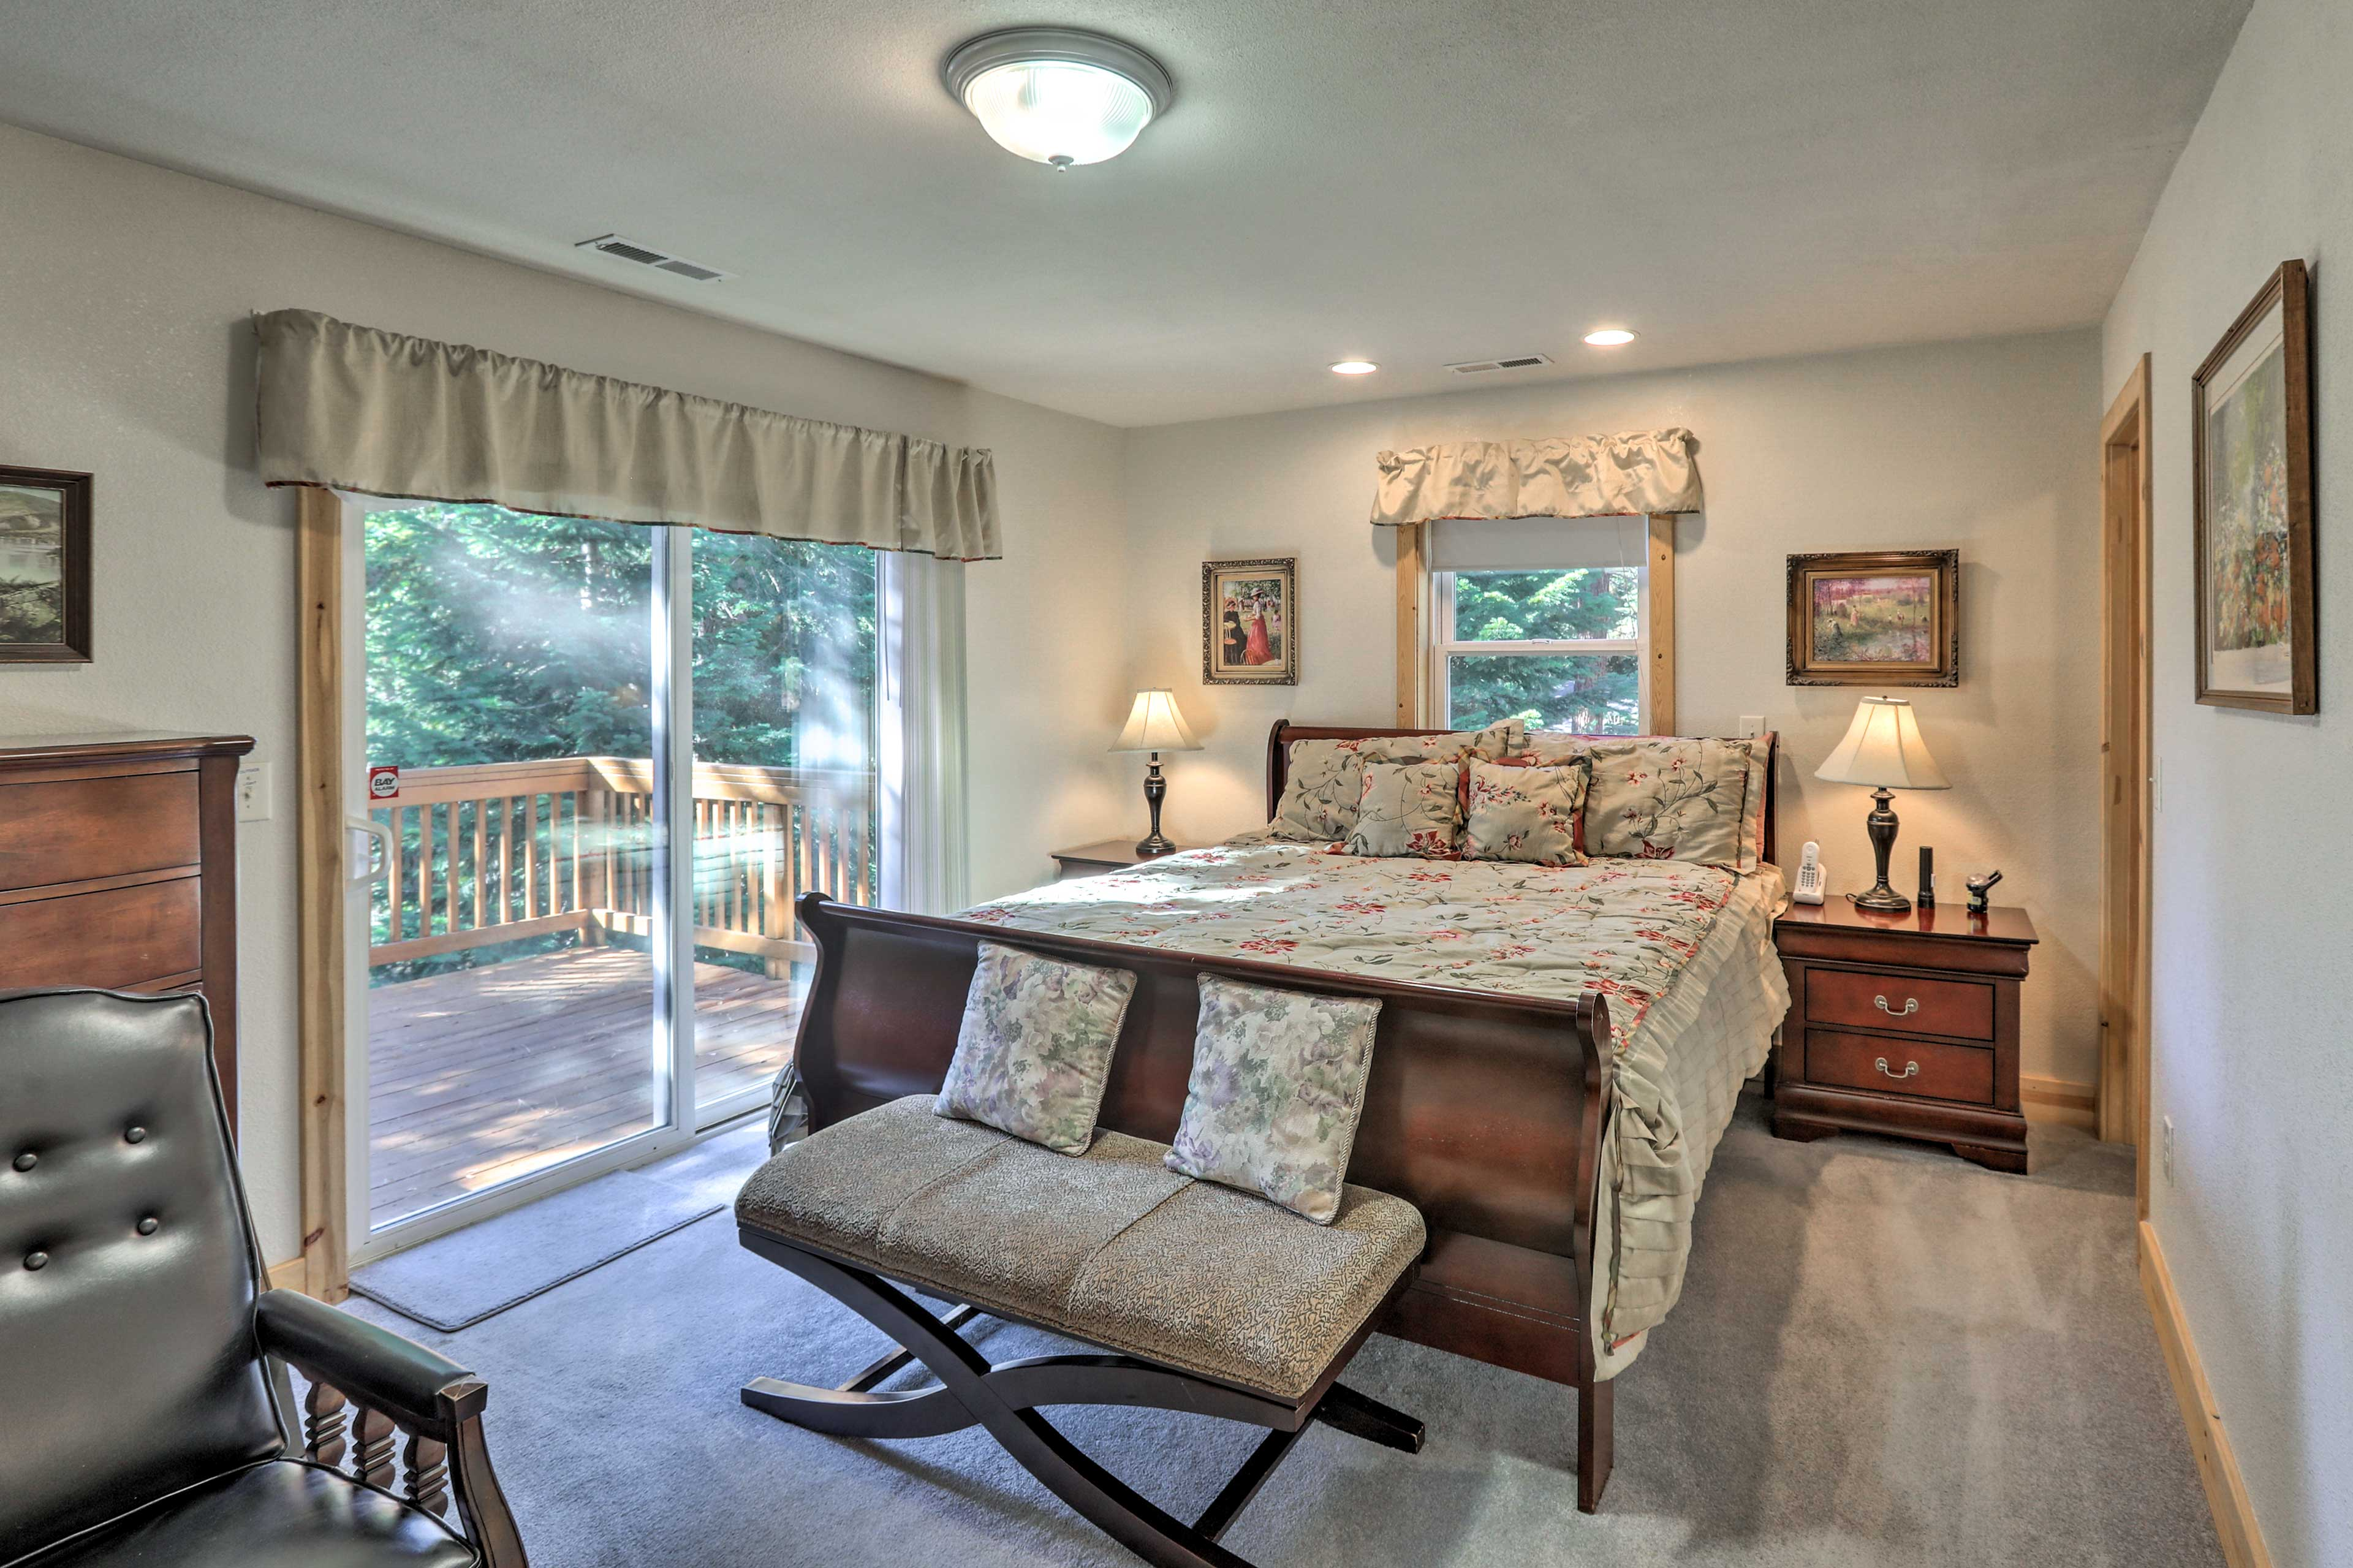 Slide onto the king bed in the spacious master bedroom.